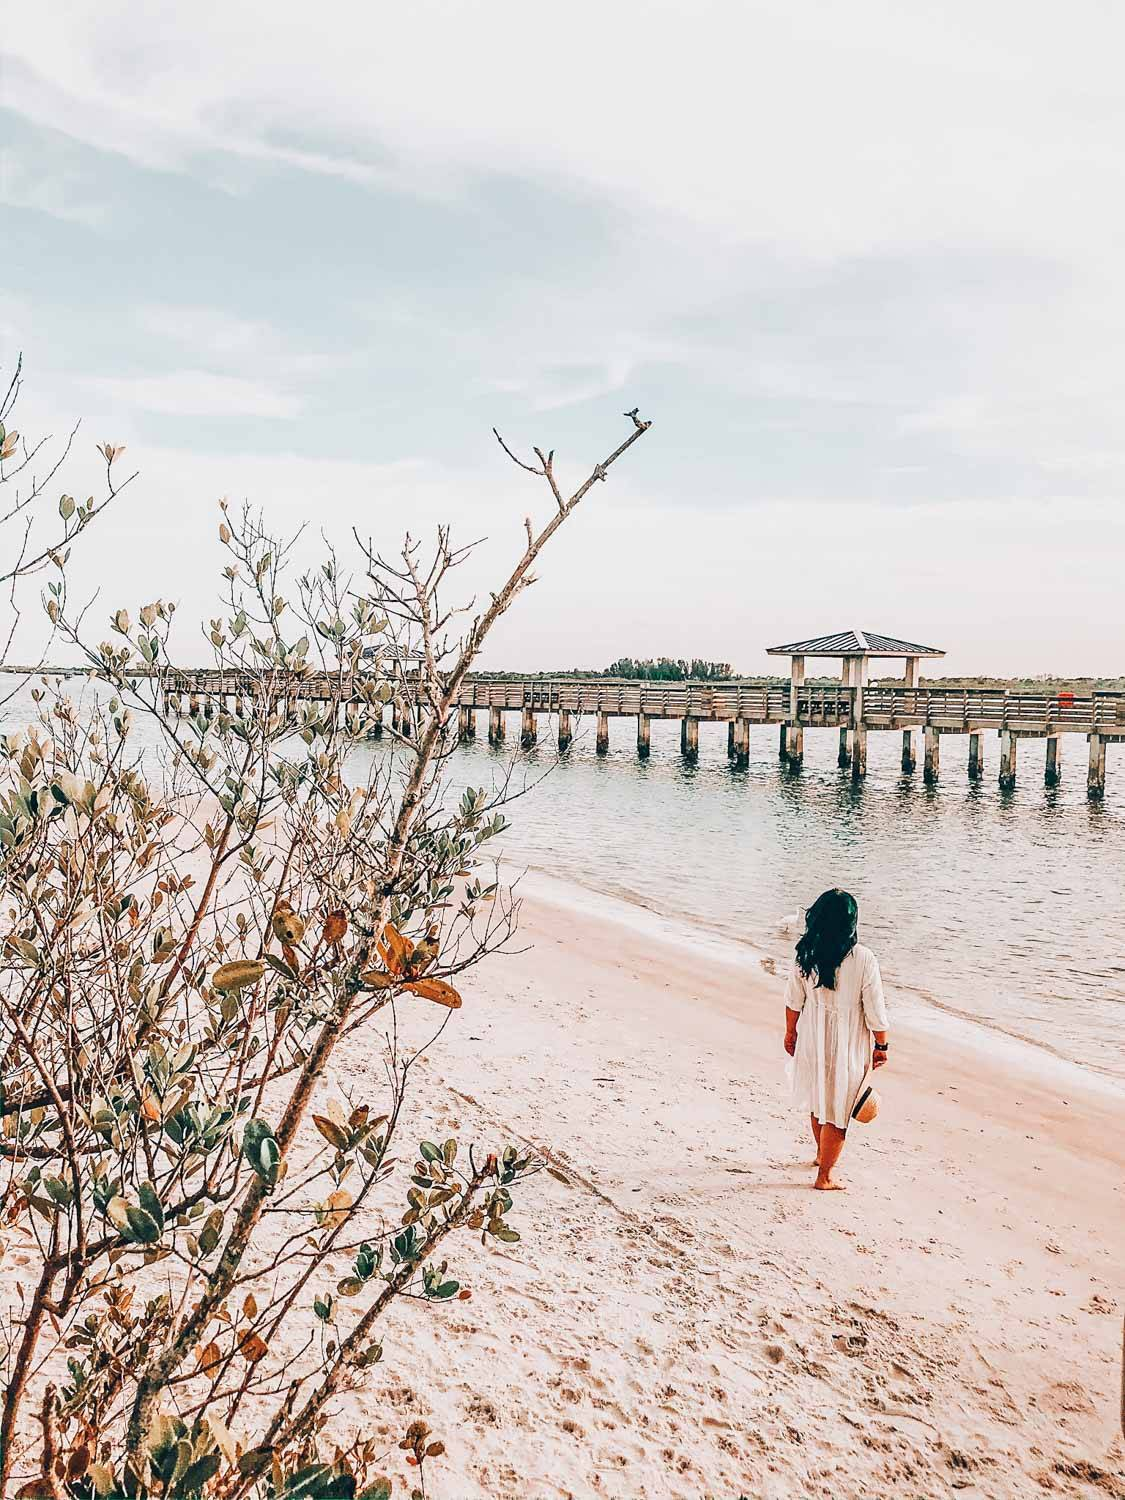 his guide to New Smyrna beach has everything you need to know about this charming little beach town in Florida. It includes things to do in New Smyrna beach, places to stay, and where to eat.